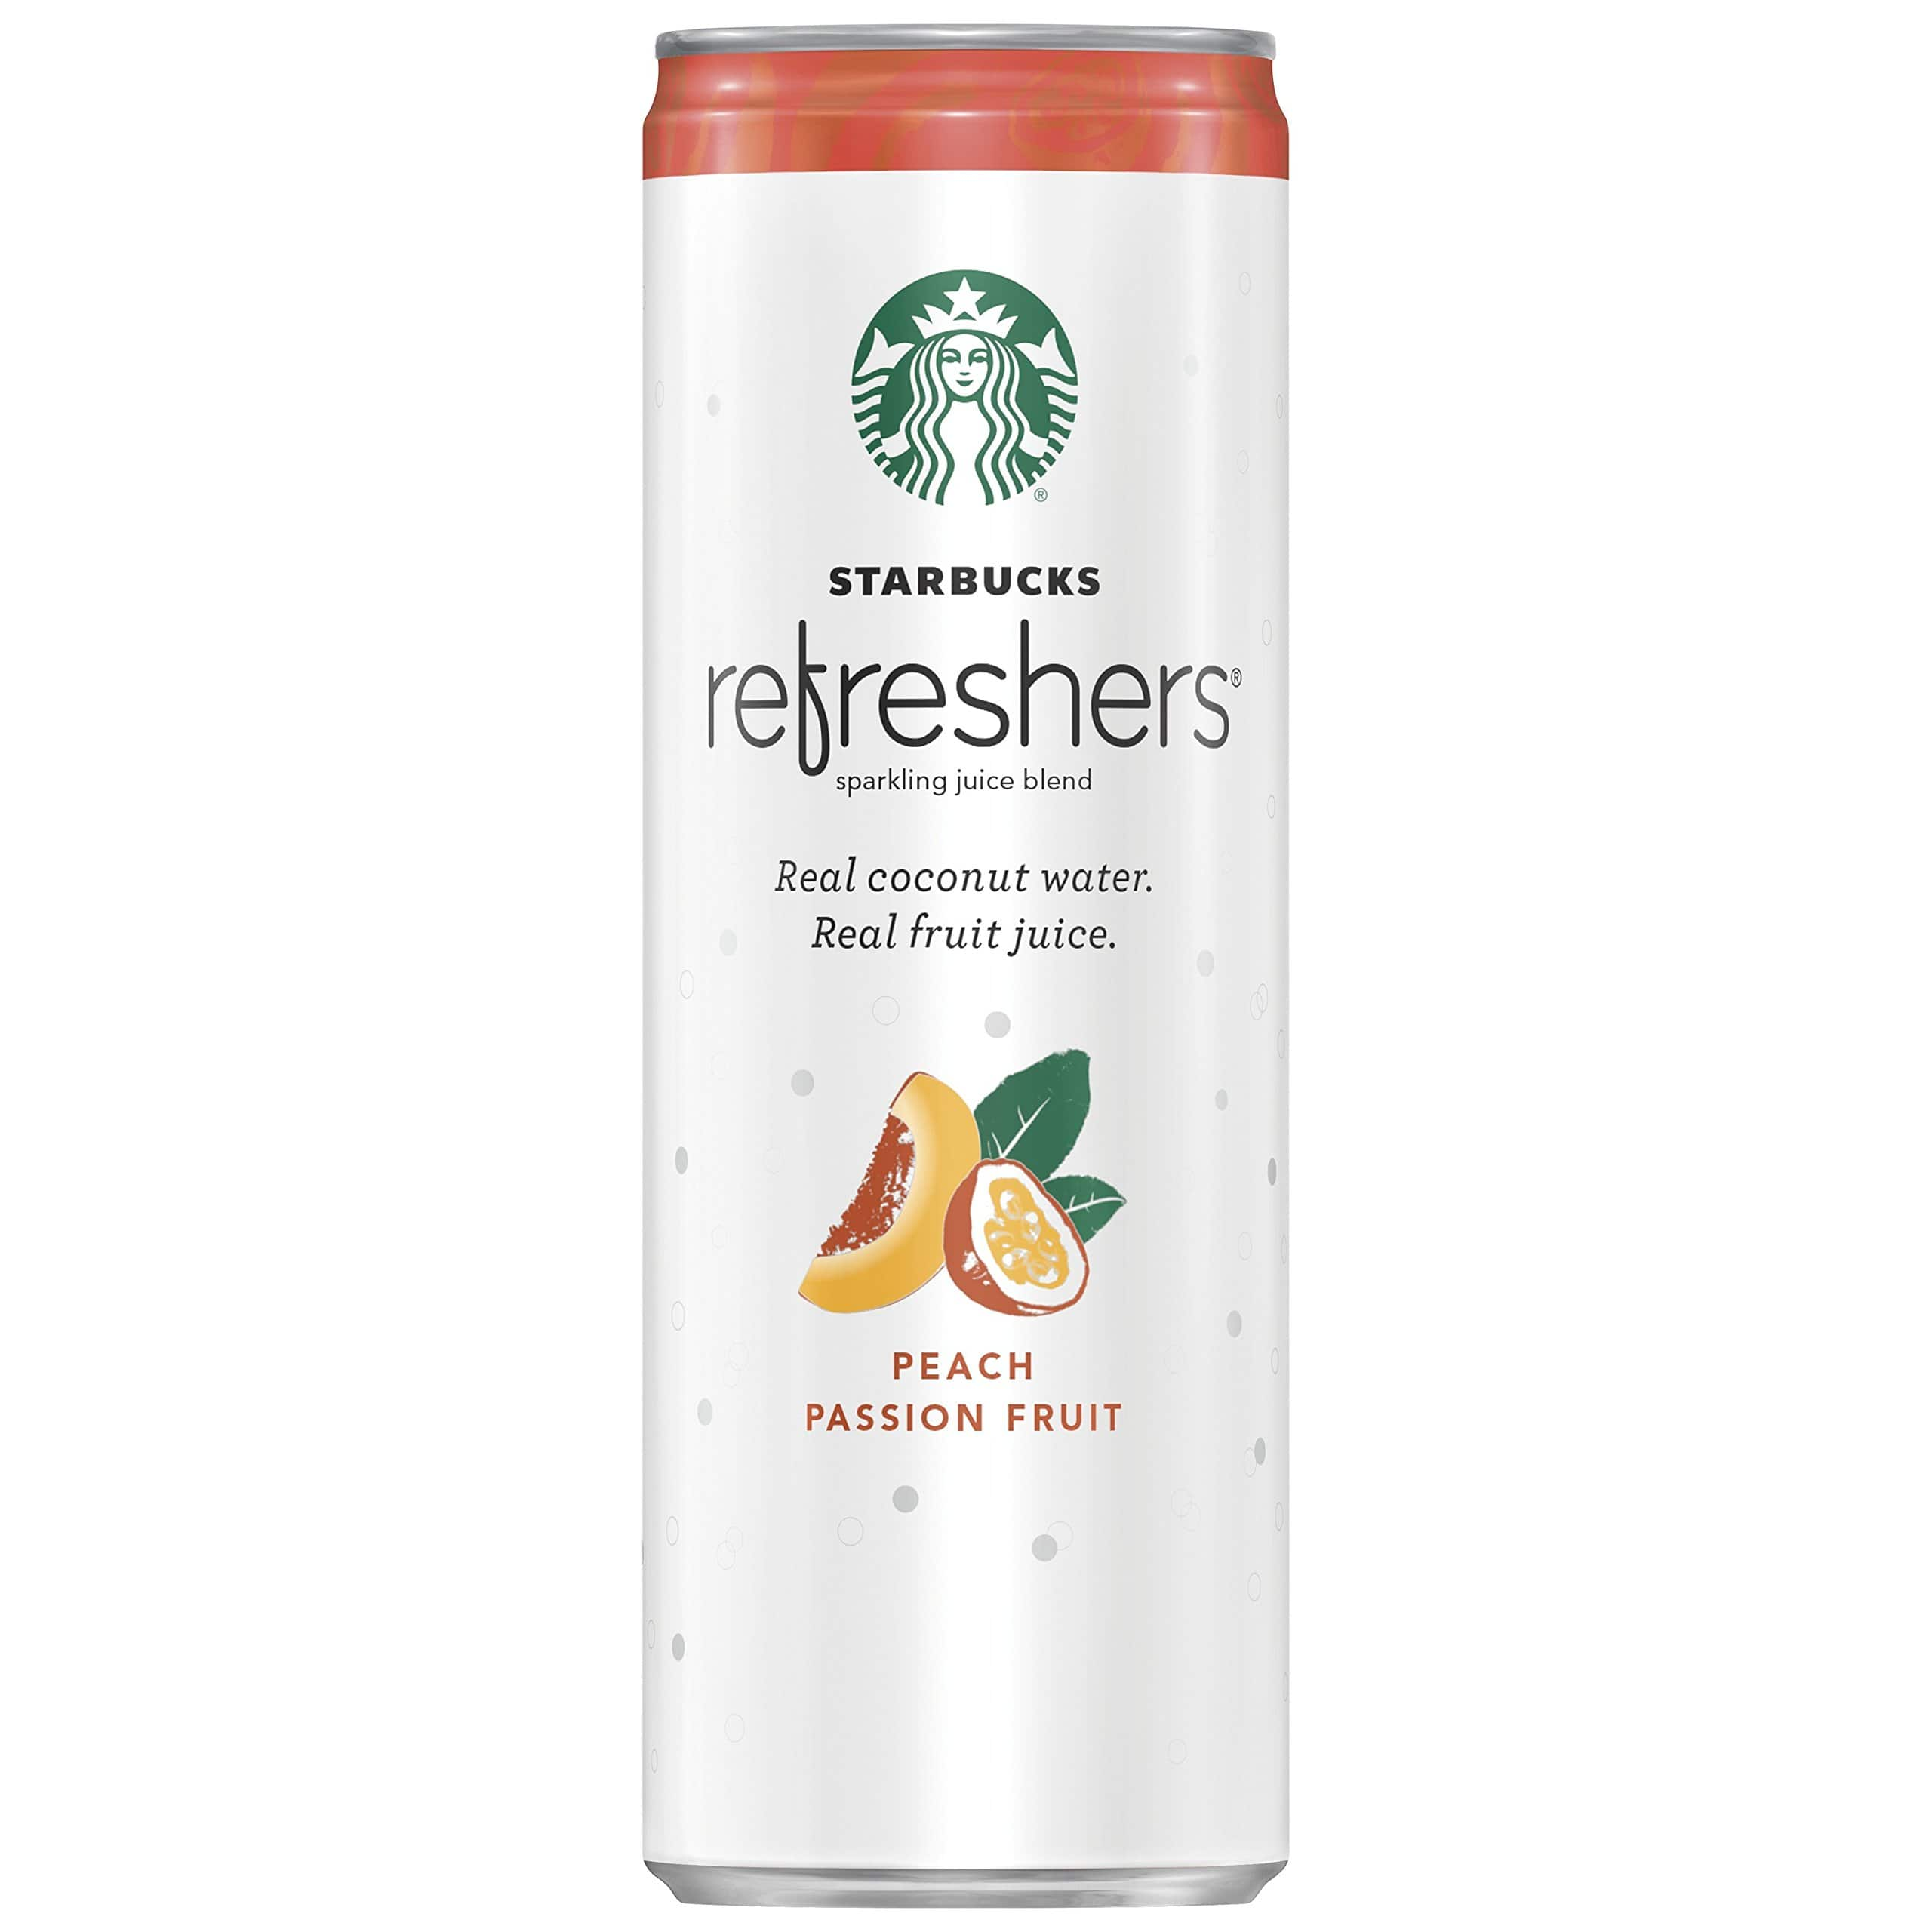 Starbucks Refreshers Sparkling Juice Blends, Strawberry Lemonade or Peach Passion Fruit with Coconut Water, 12 Ounce, 12 Cans for $14